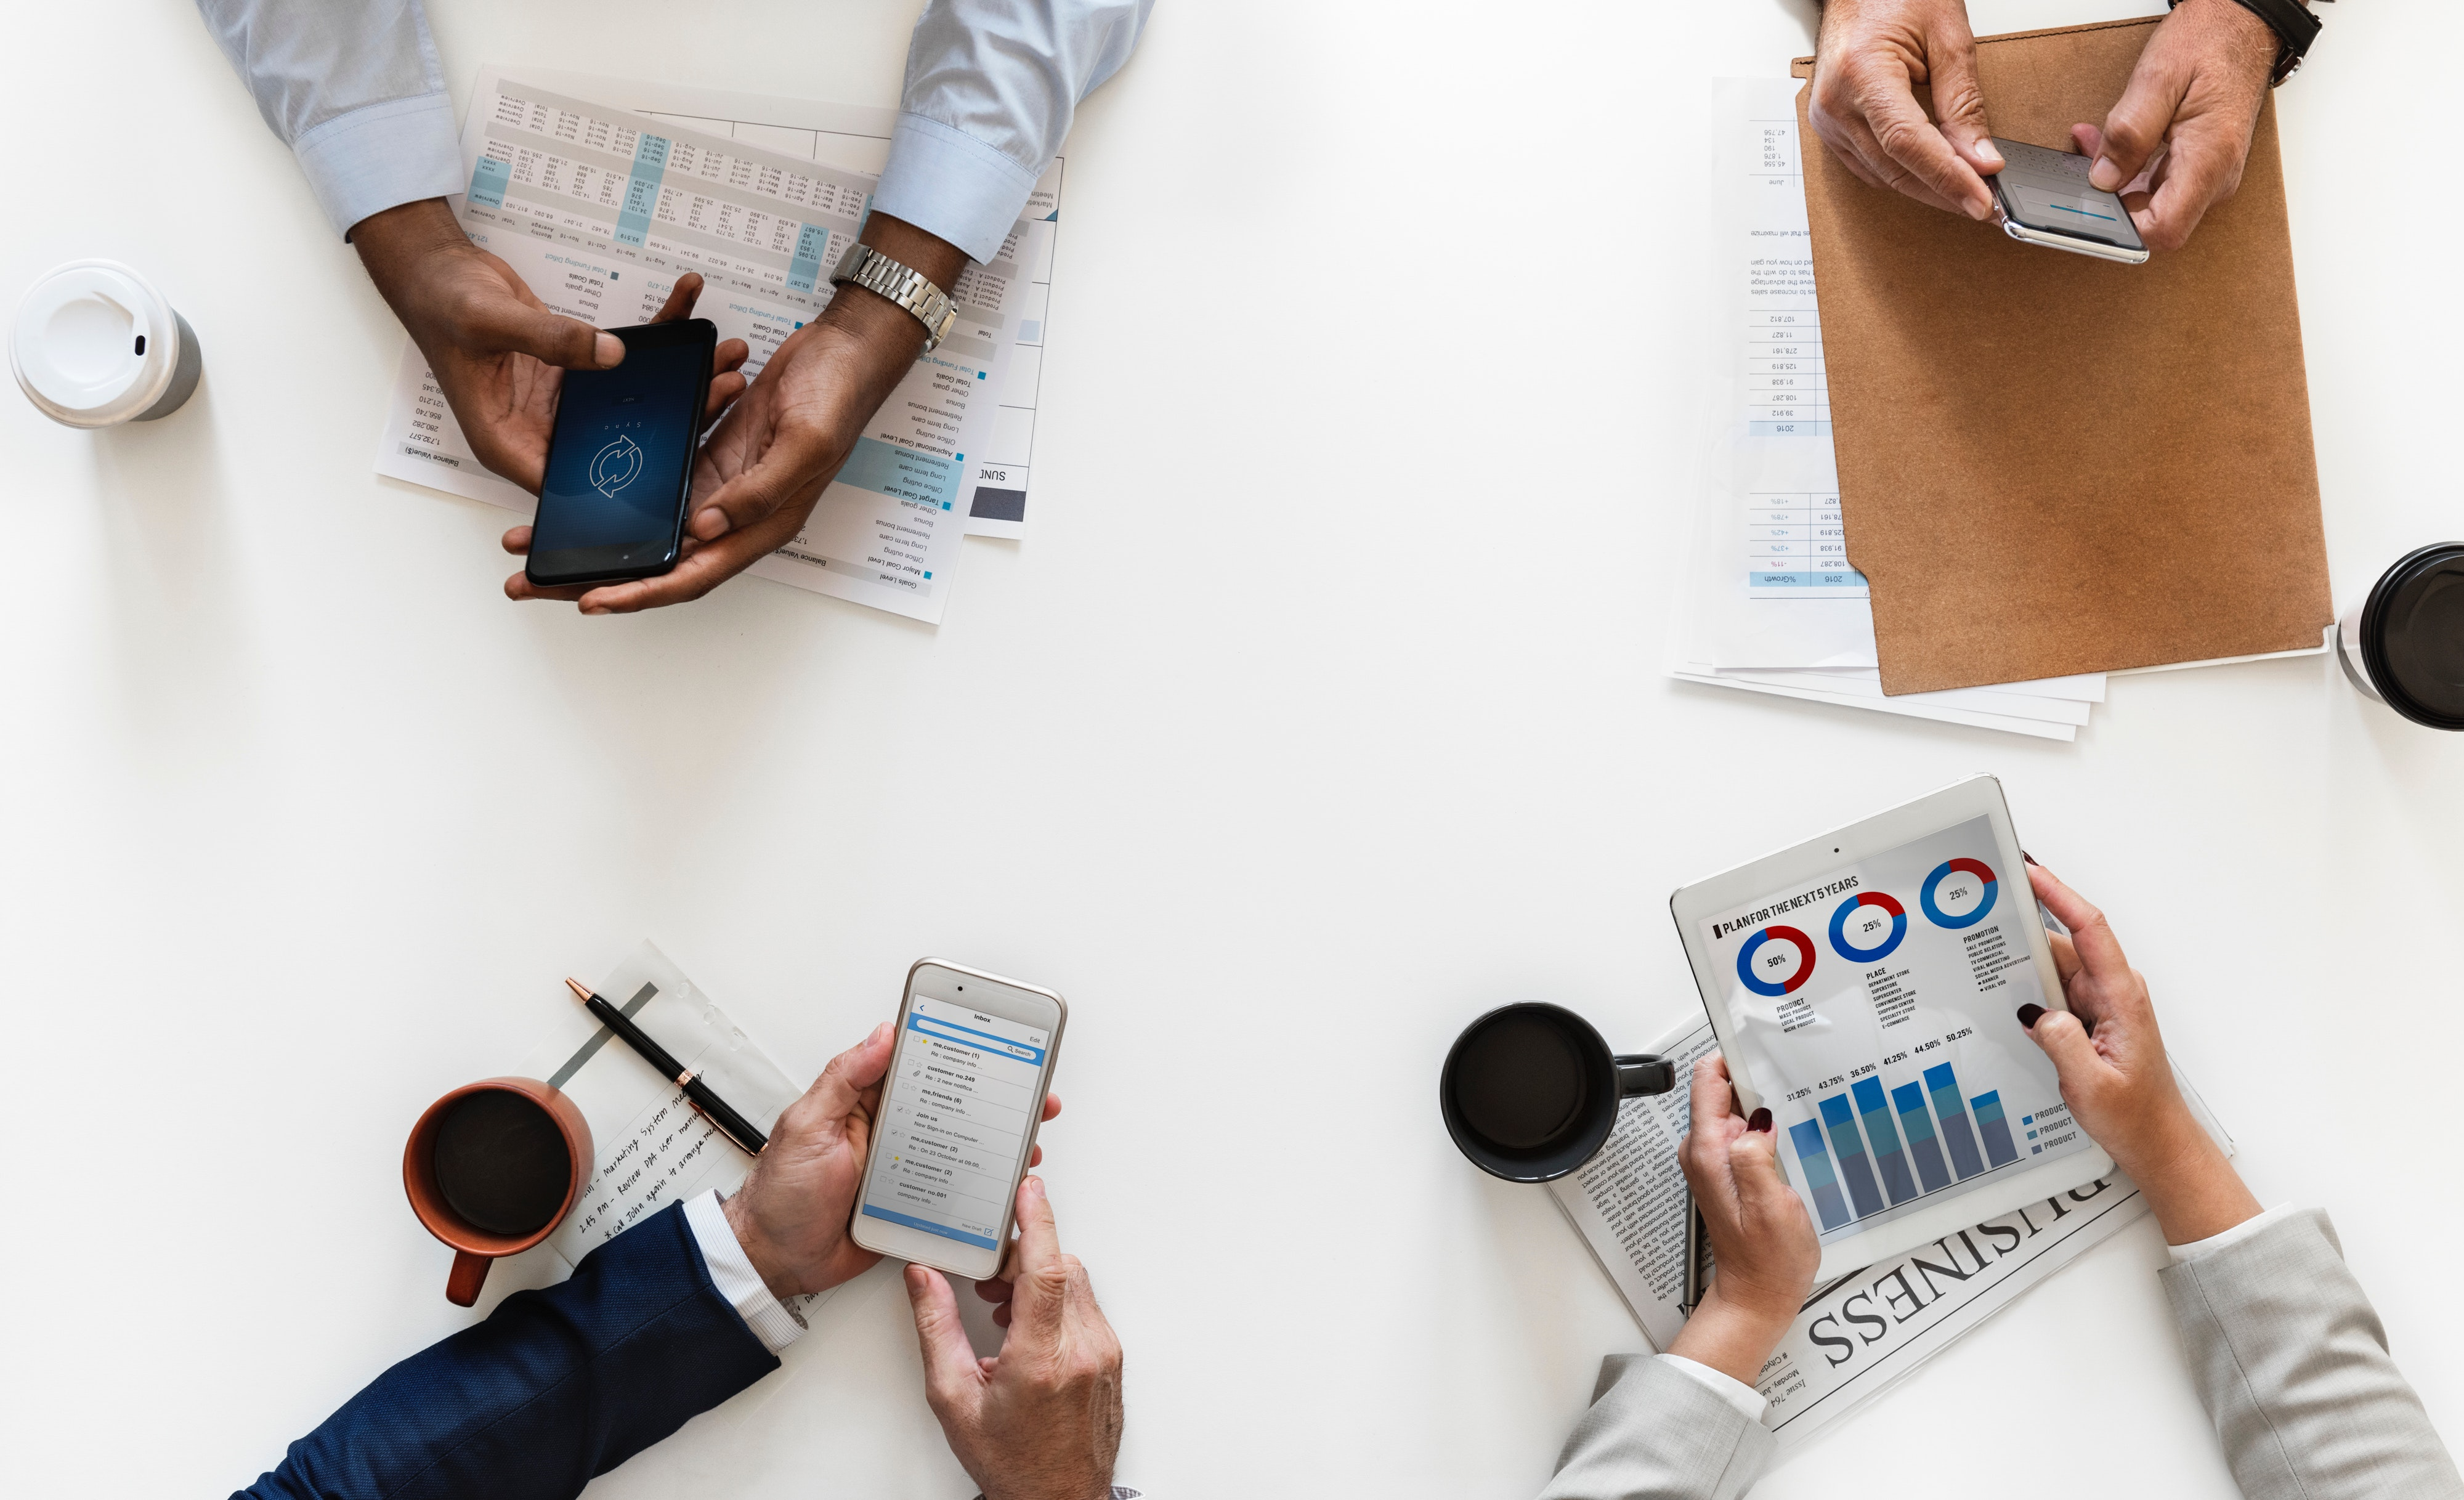 6 Things Will Impact Your Sales Transformation in 2019